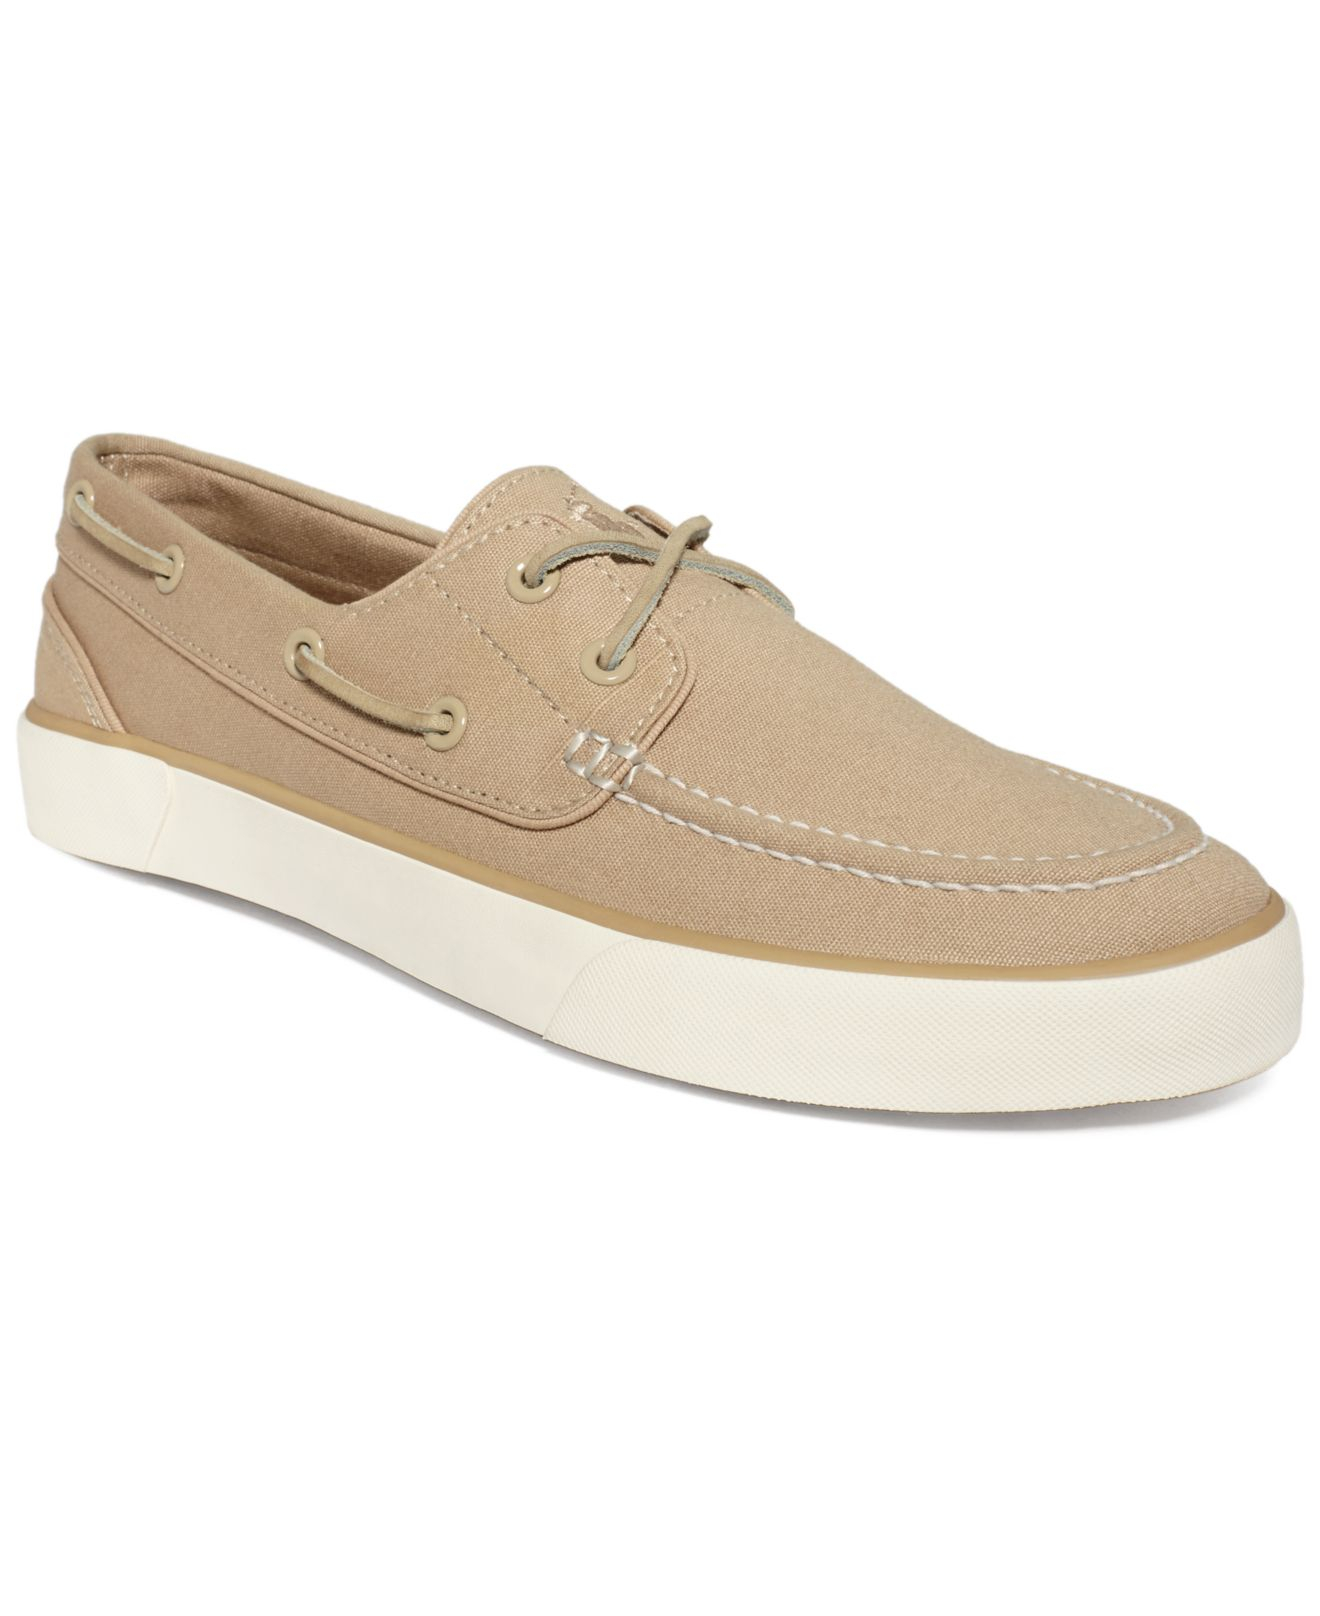 Lyst - Polo Ralph Lauren Sander P Boat Shoes in Natural for Men 87a2b3095af9